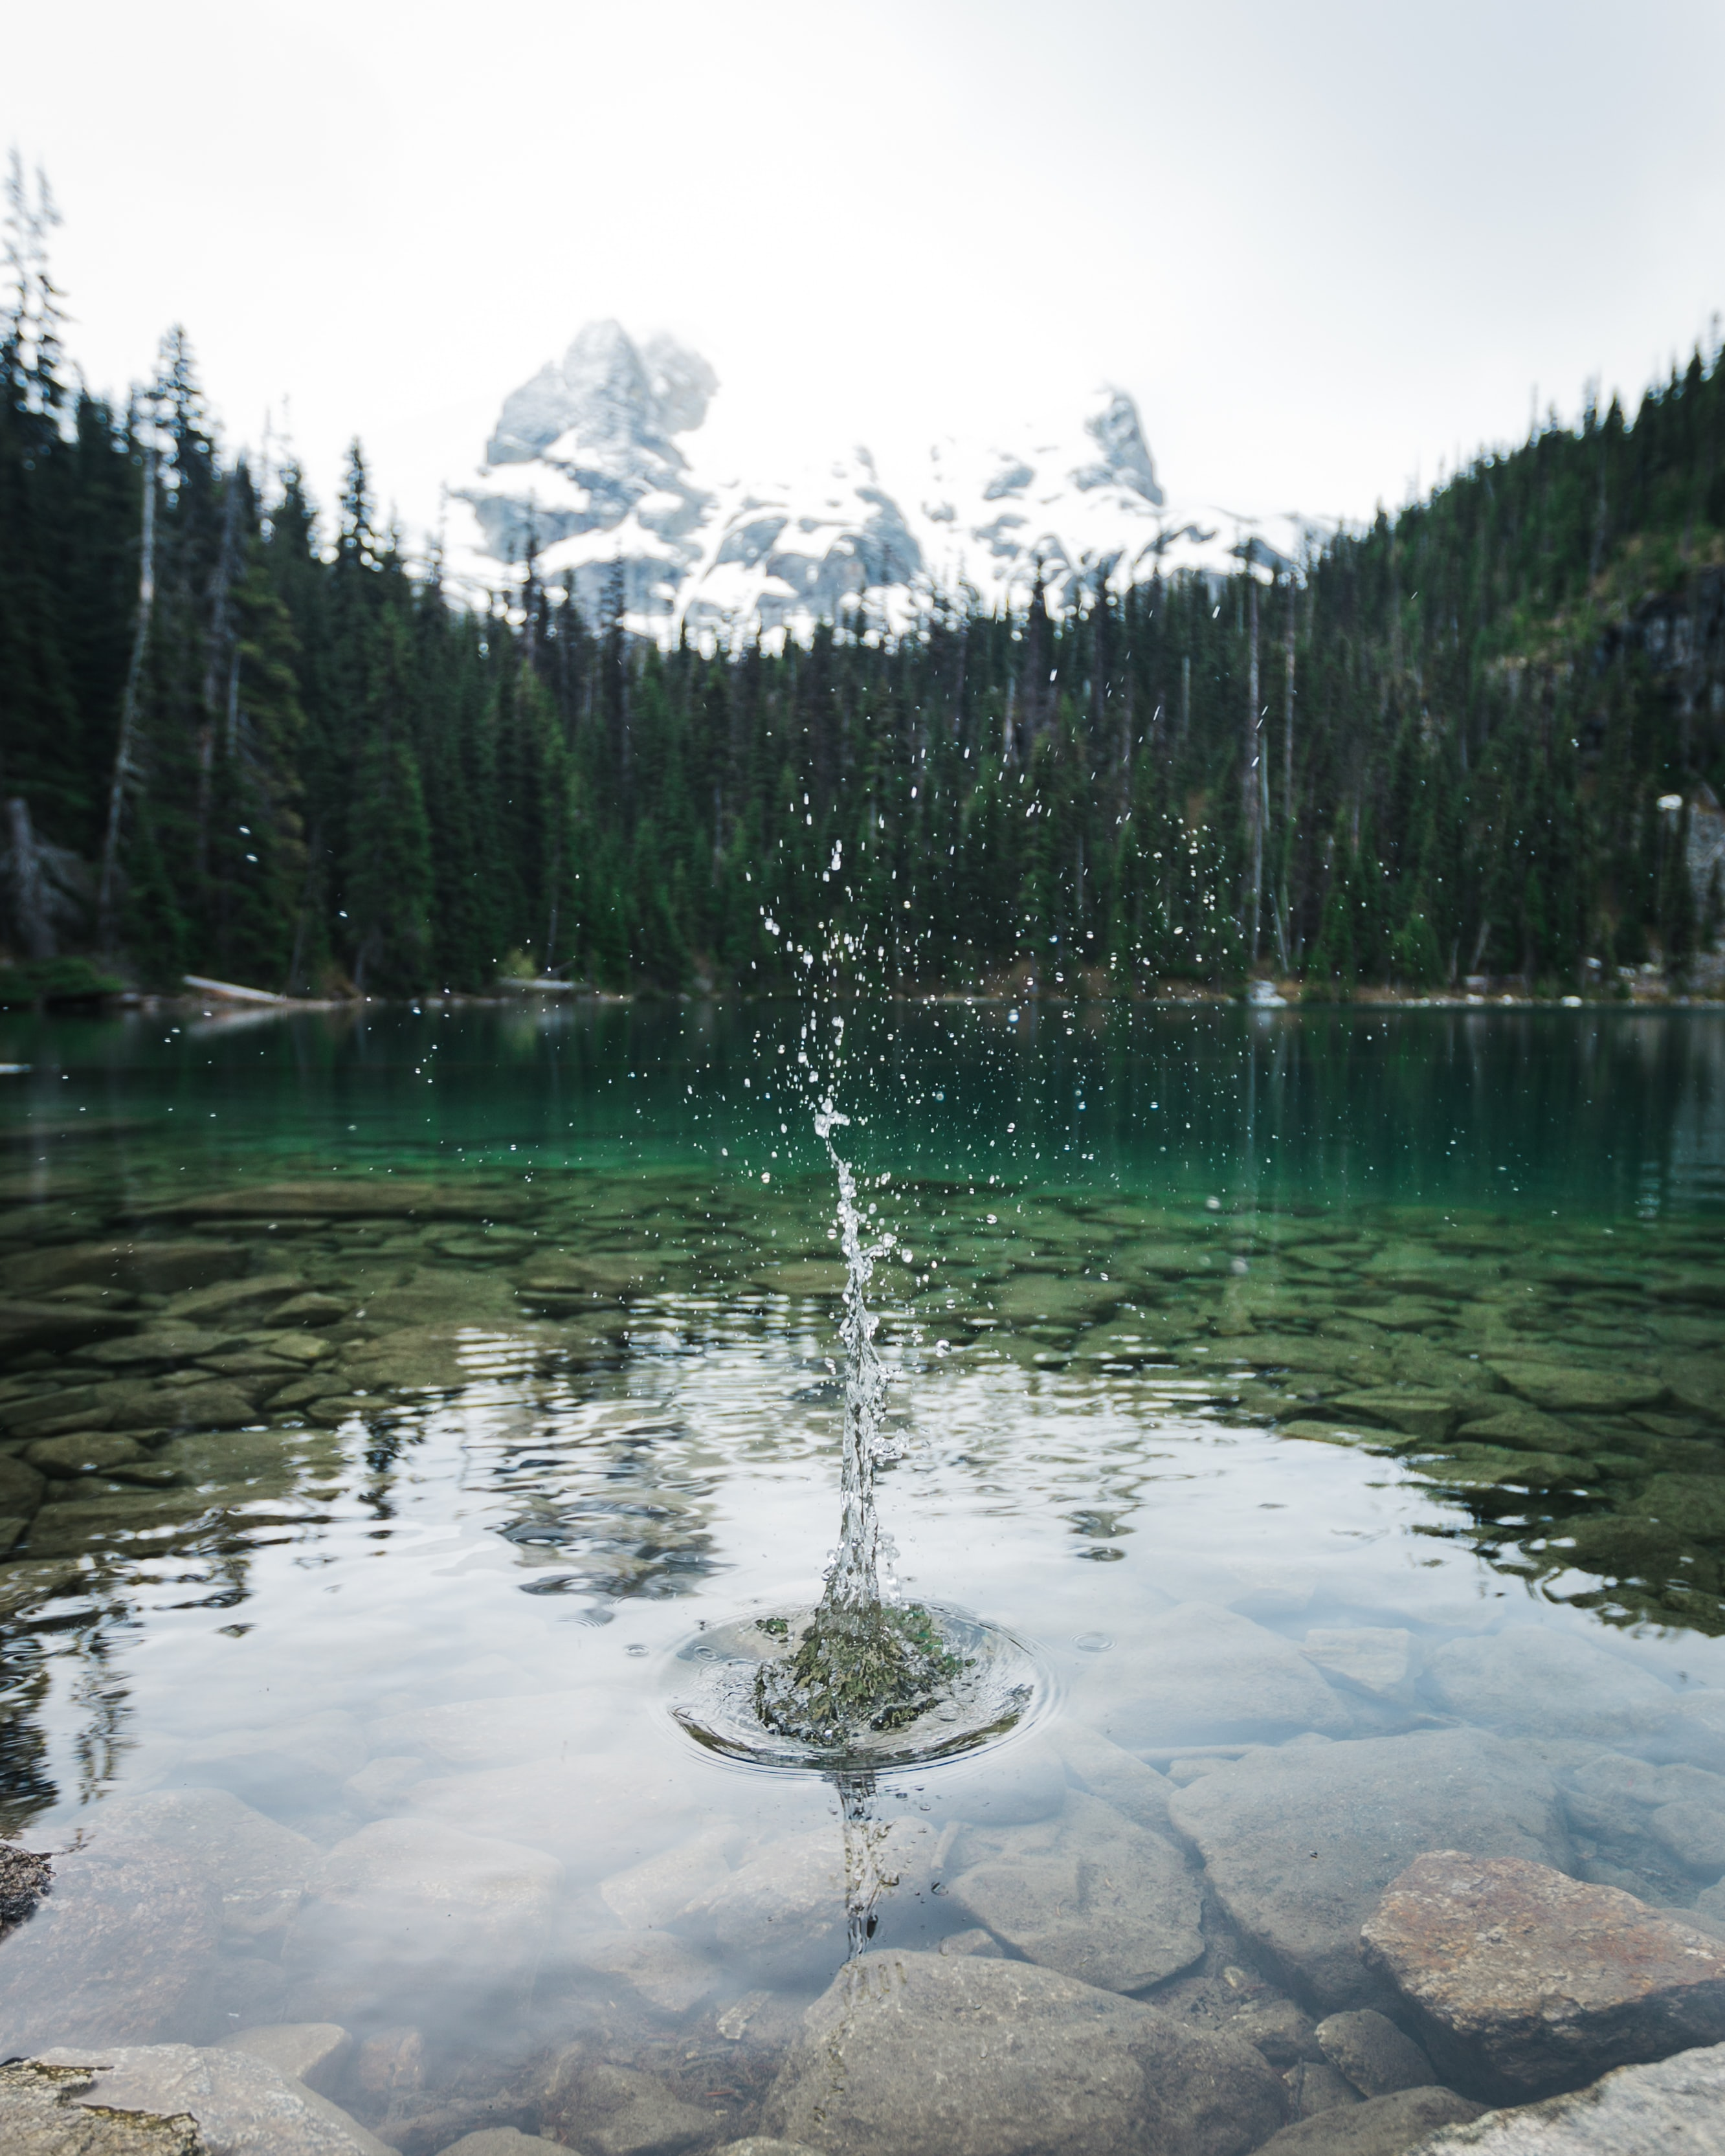 time lapse photography of uplift water on lake surrounded with at daytime